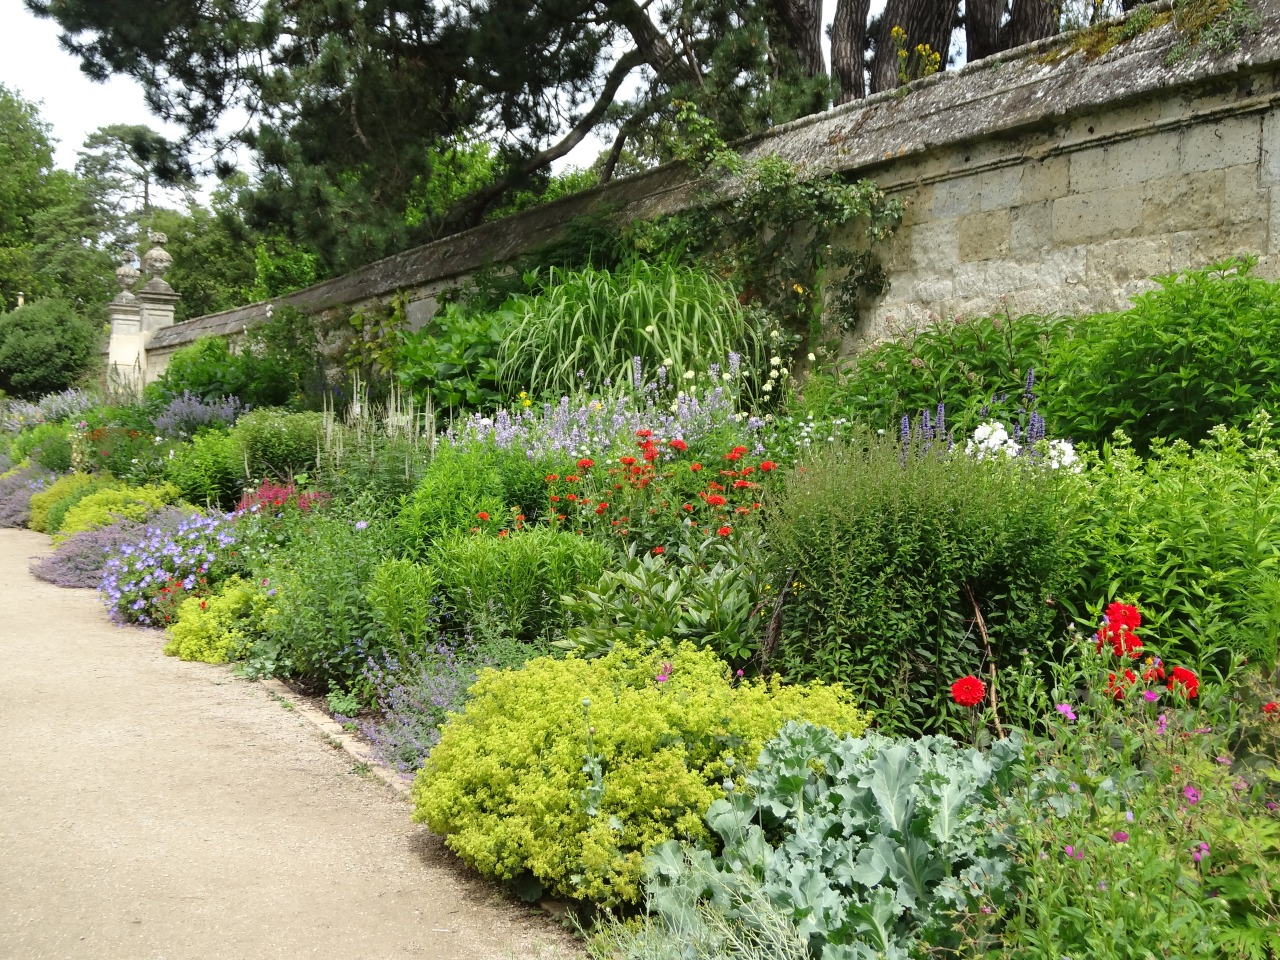 Top 10 hardworking plants for herbaceous borders jardin top 10 hardworking plants for herbaceous borders mightylinksfo